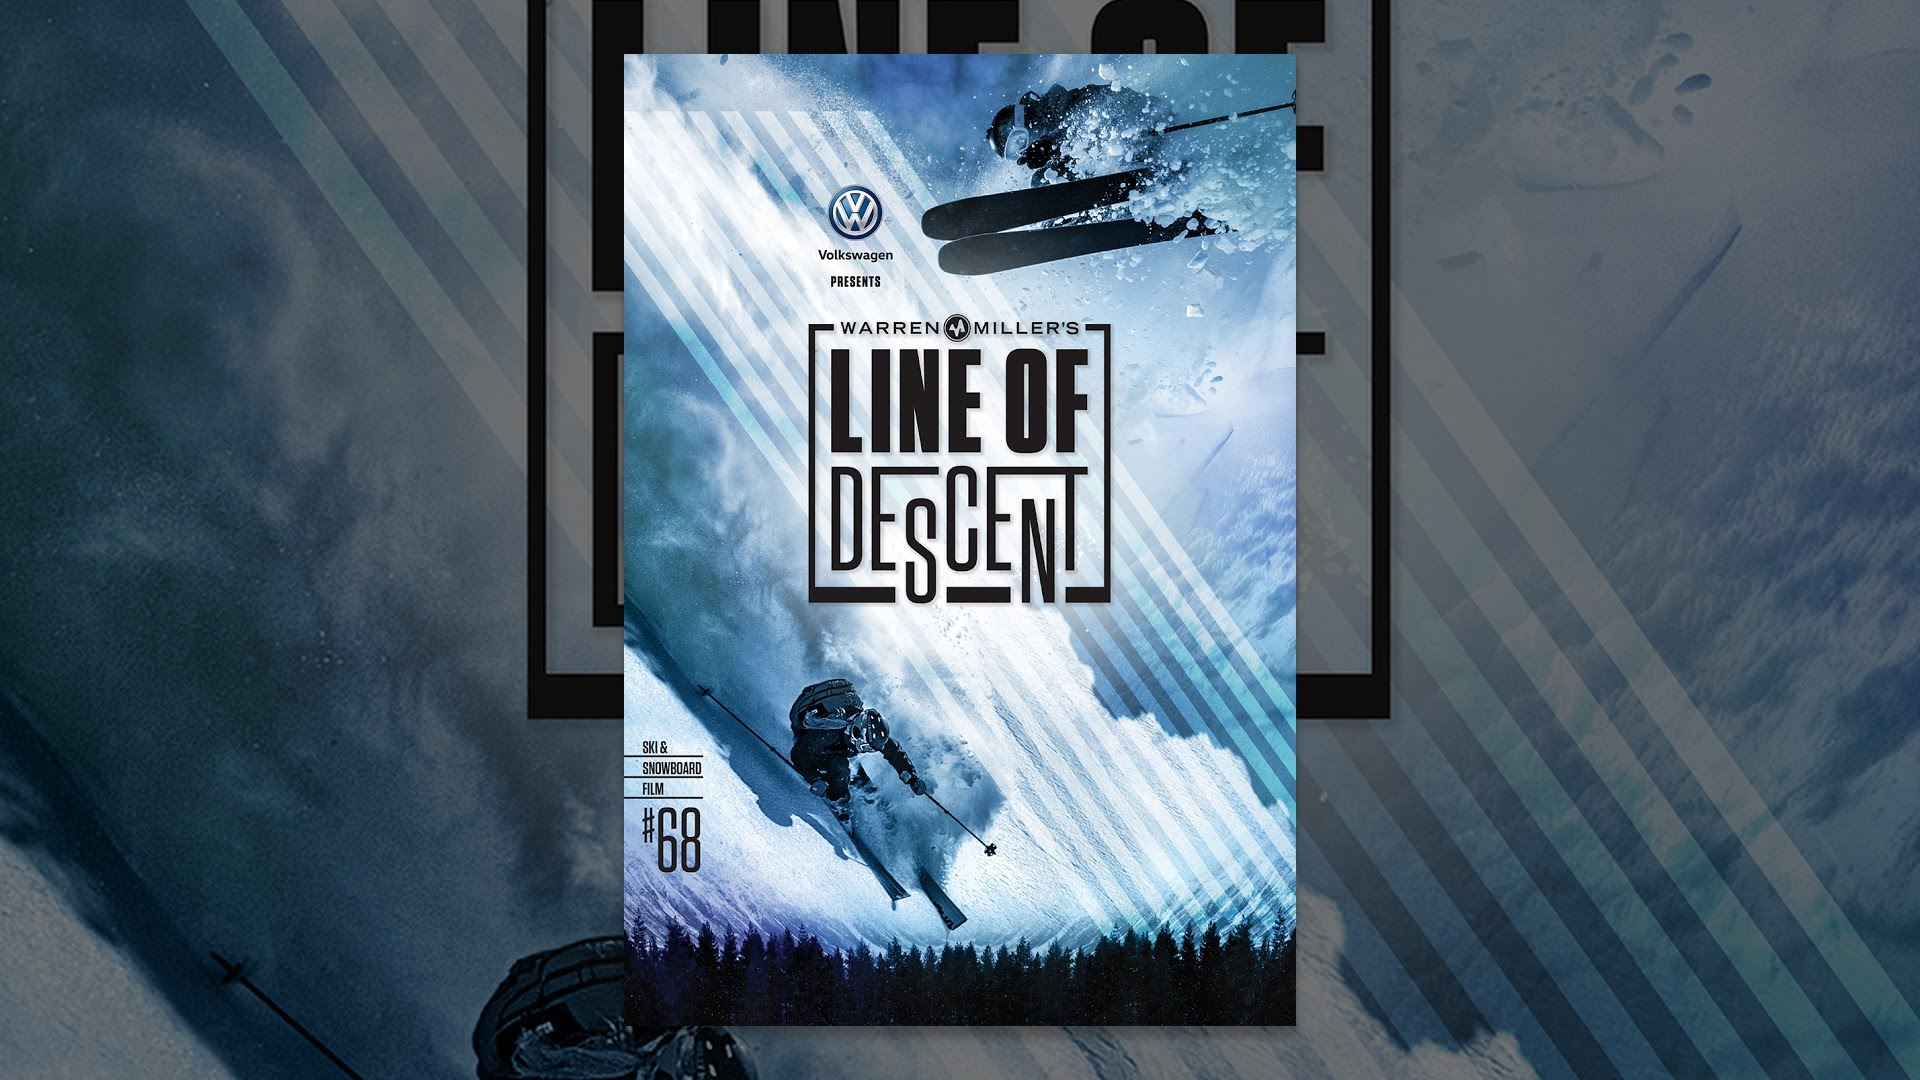 Volkswagen Presents: Warren Miller's Line of Descent